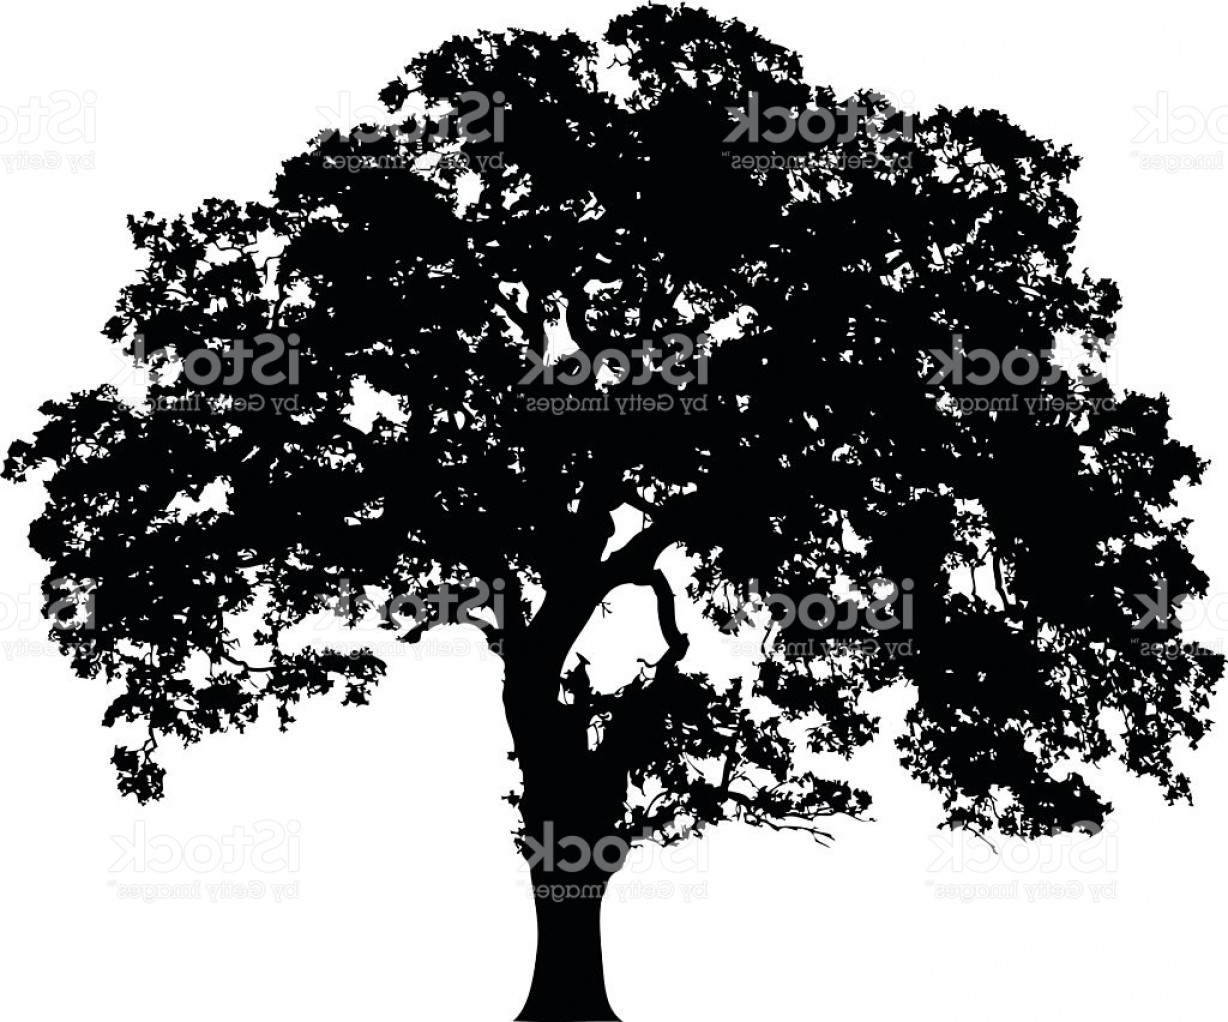 Oak Tree Silhouette Vector Graphics: Beautiful Vector Tree Silhouette Icon For Websites Gm